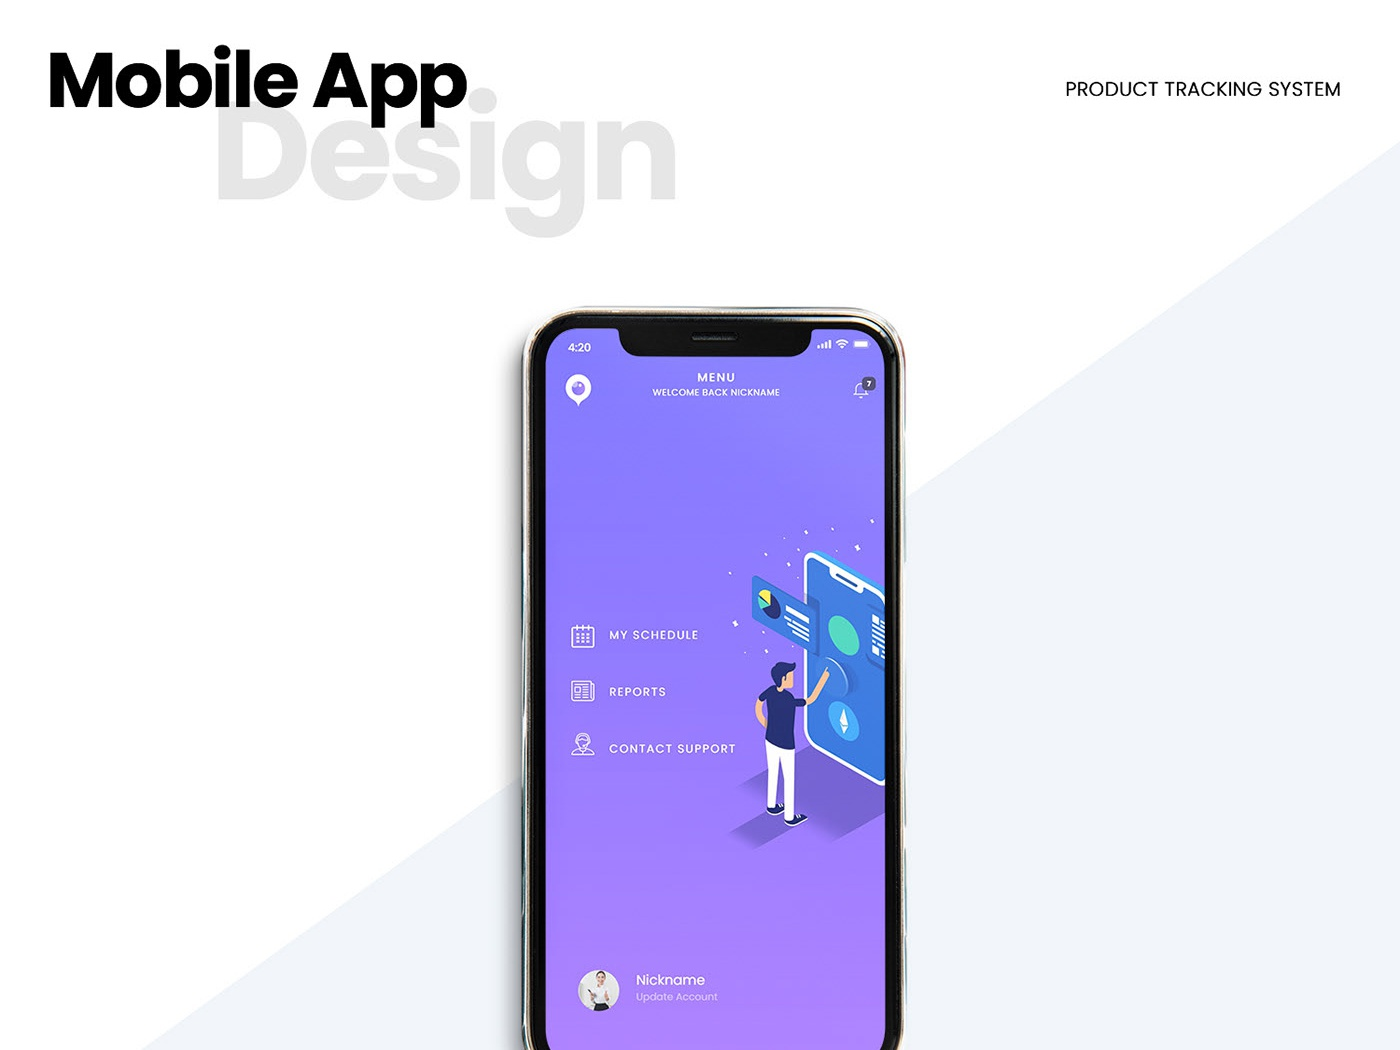 Mobile App Design - Product Tracking System mobile interaction adobe xd mobile design hybrid app mobile app development mobile app ux ui